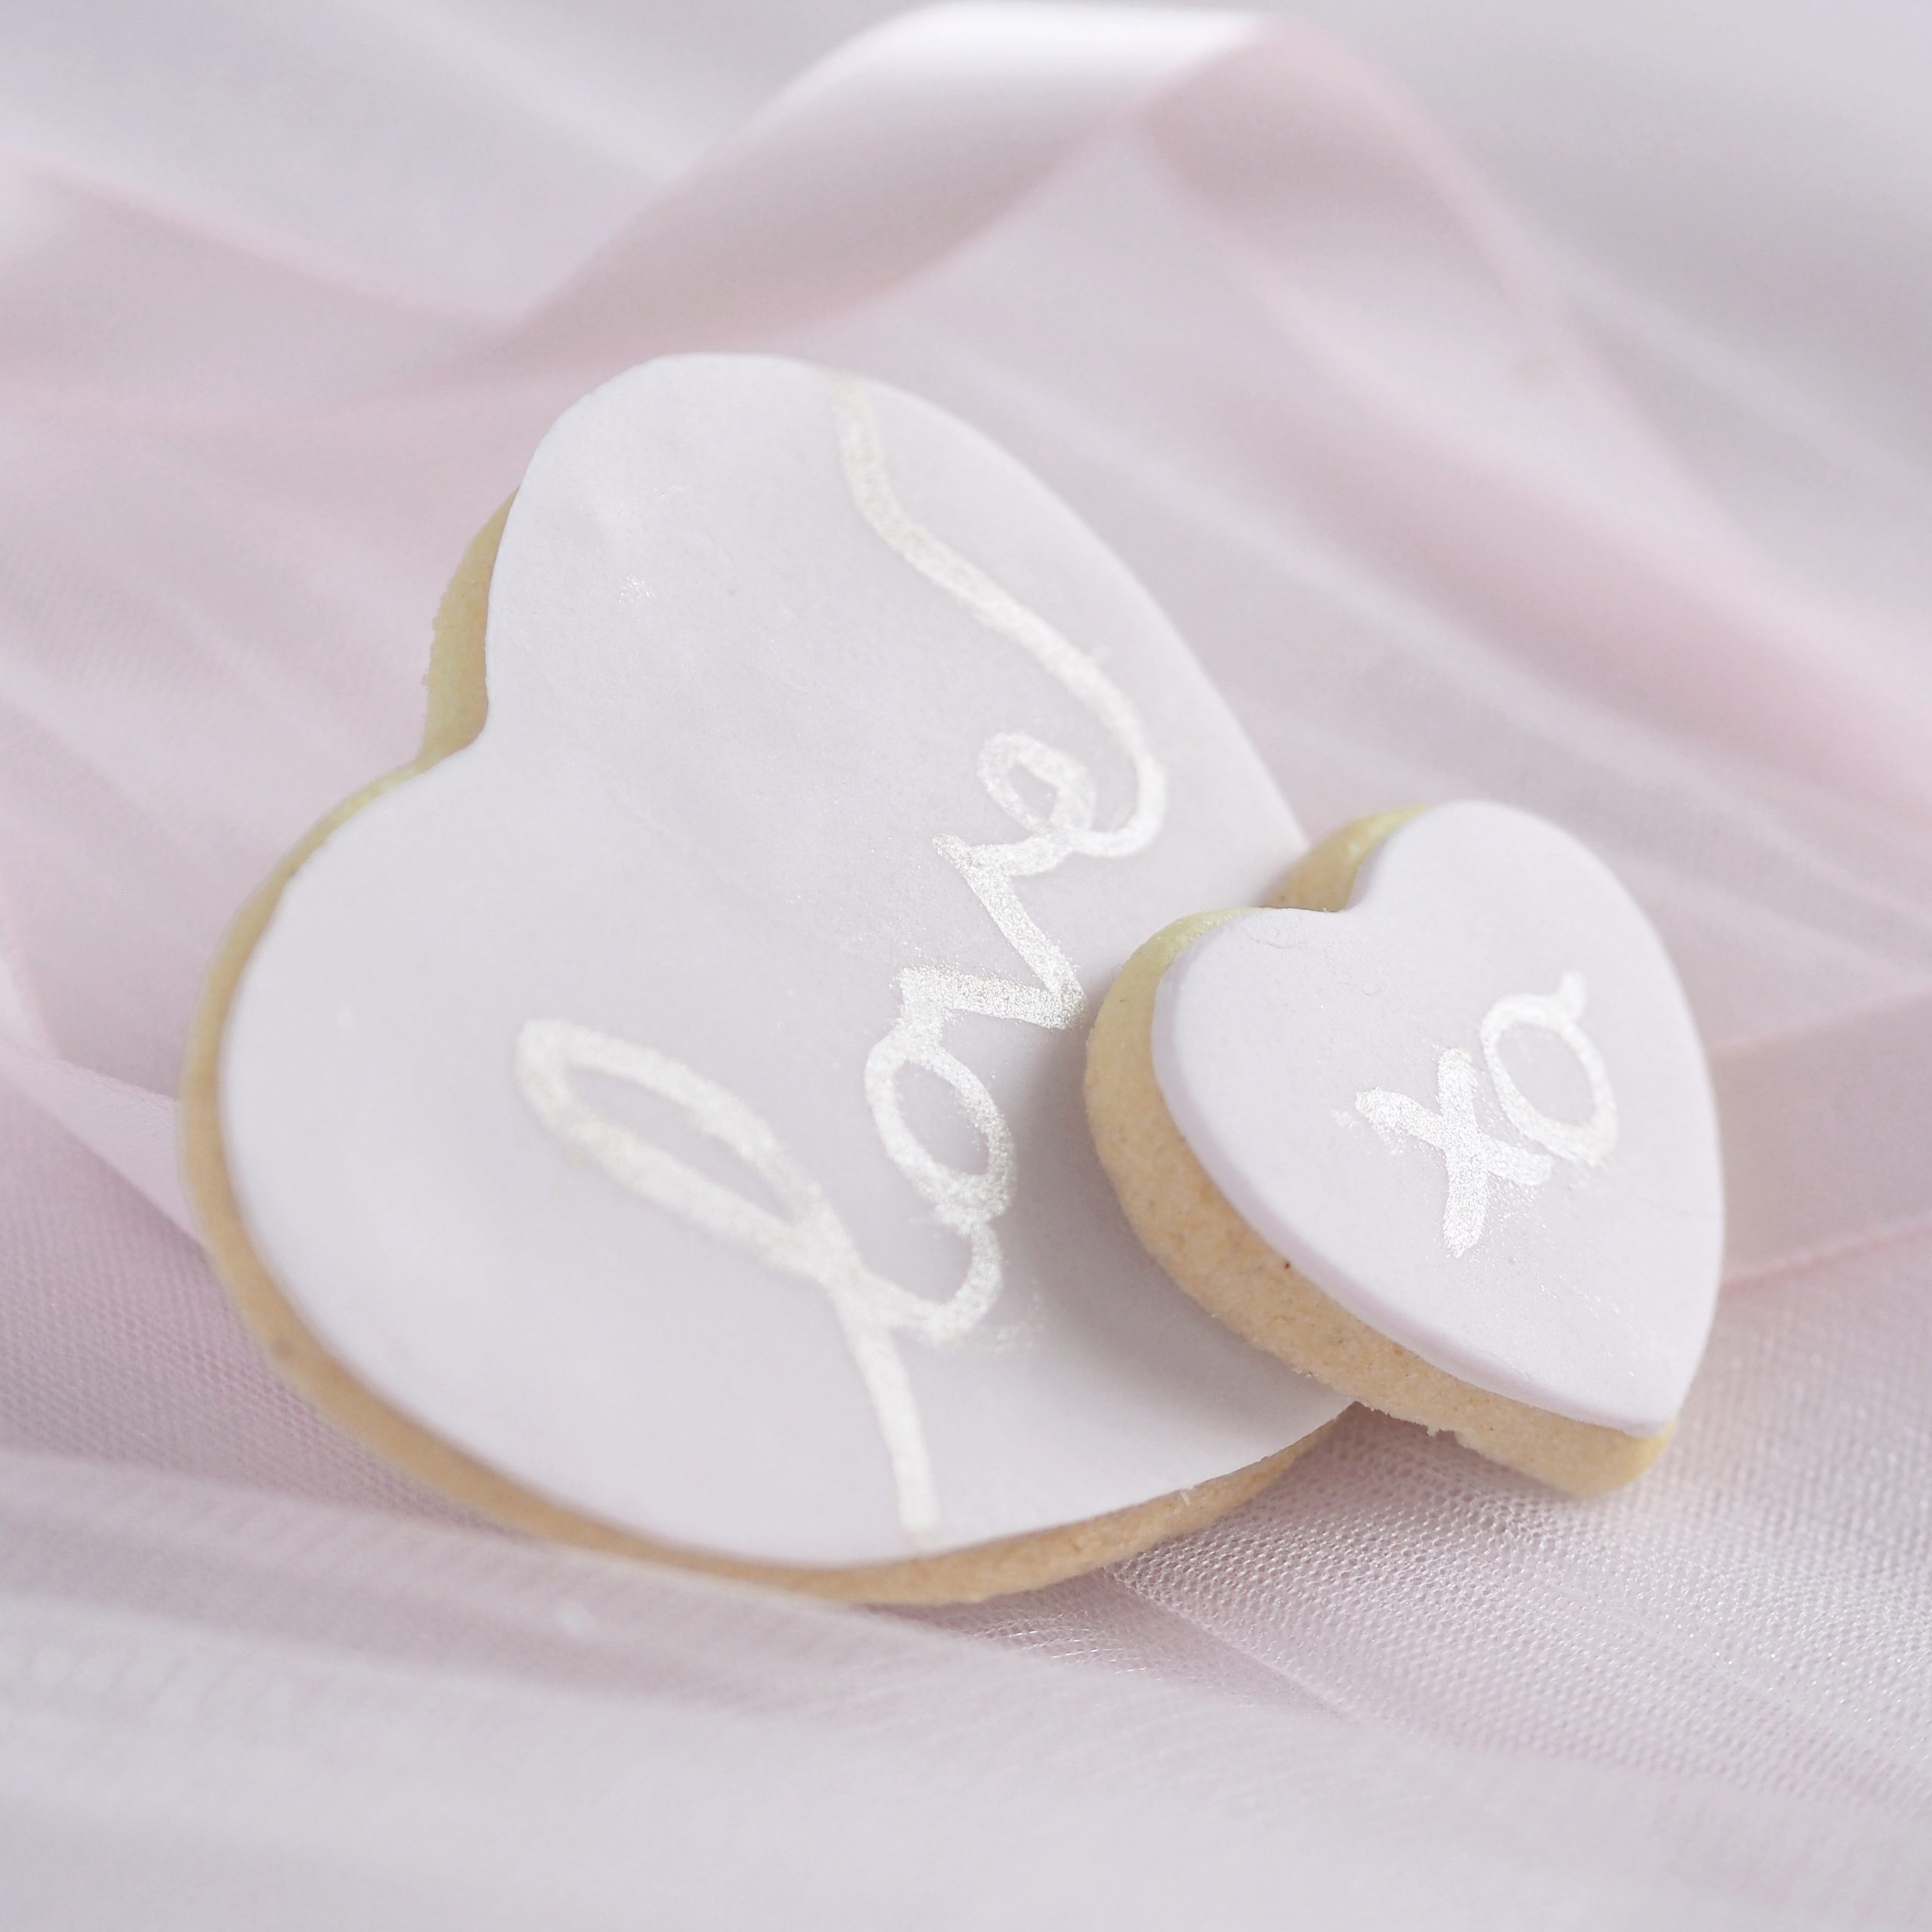 8 Sweet Ideas For Your Valentine's Baking ~ Heart Sugar Cookies